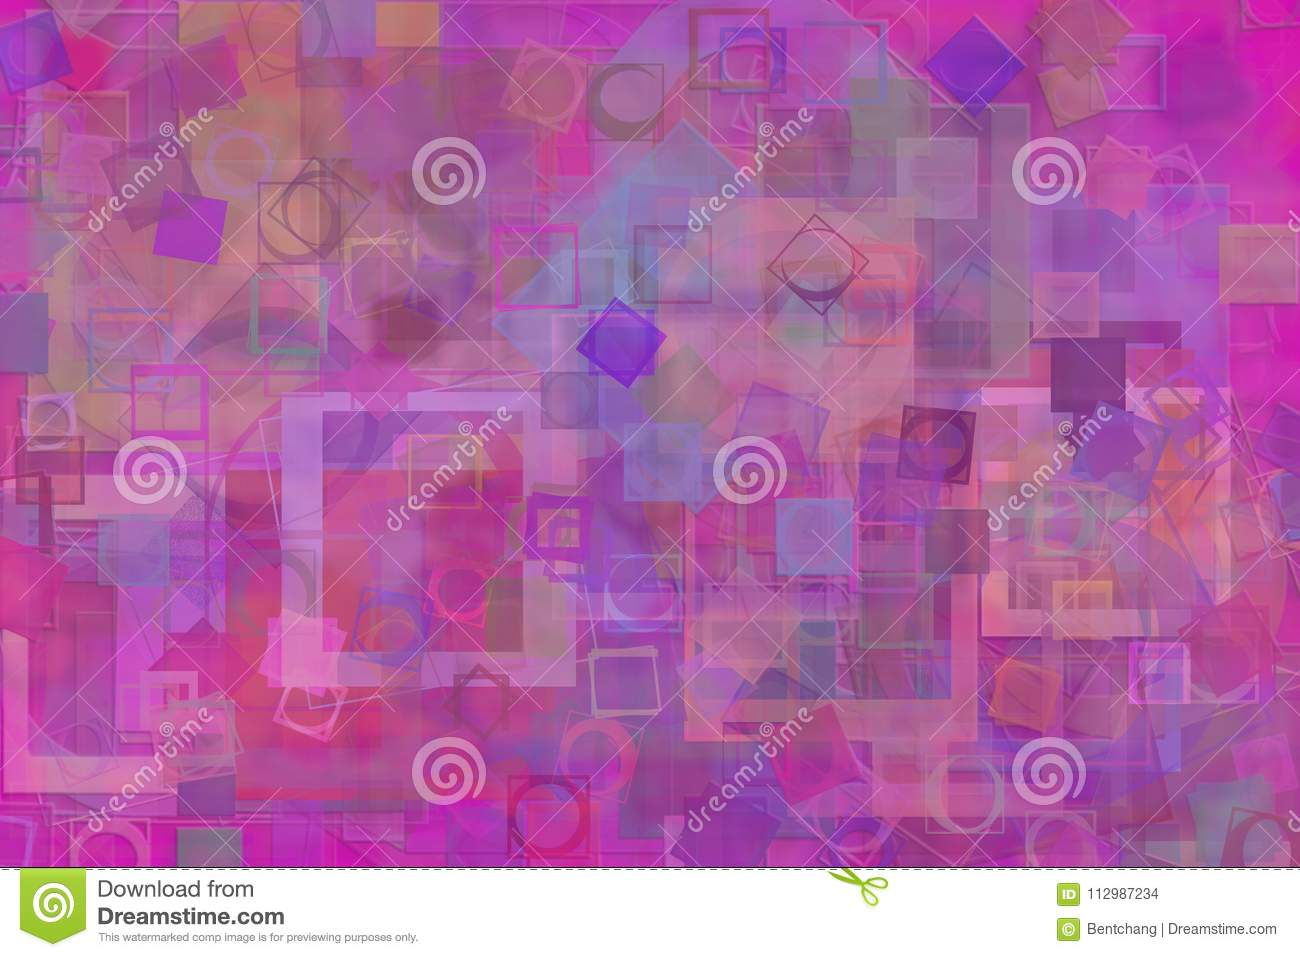 Illustrations of shape. For wallpaper or graphic design. Pattern, color, cover, brushed & square.